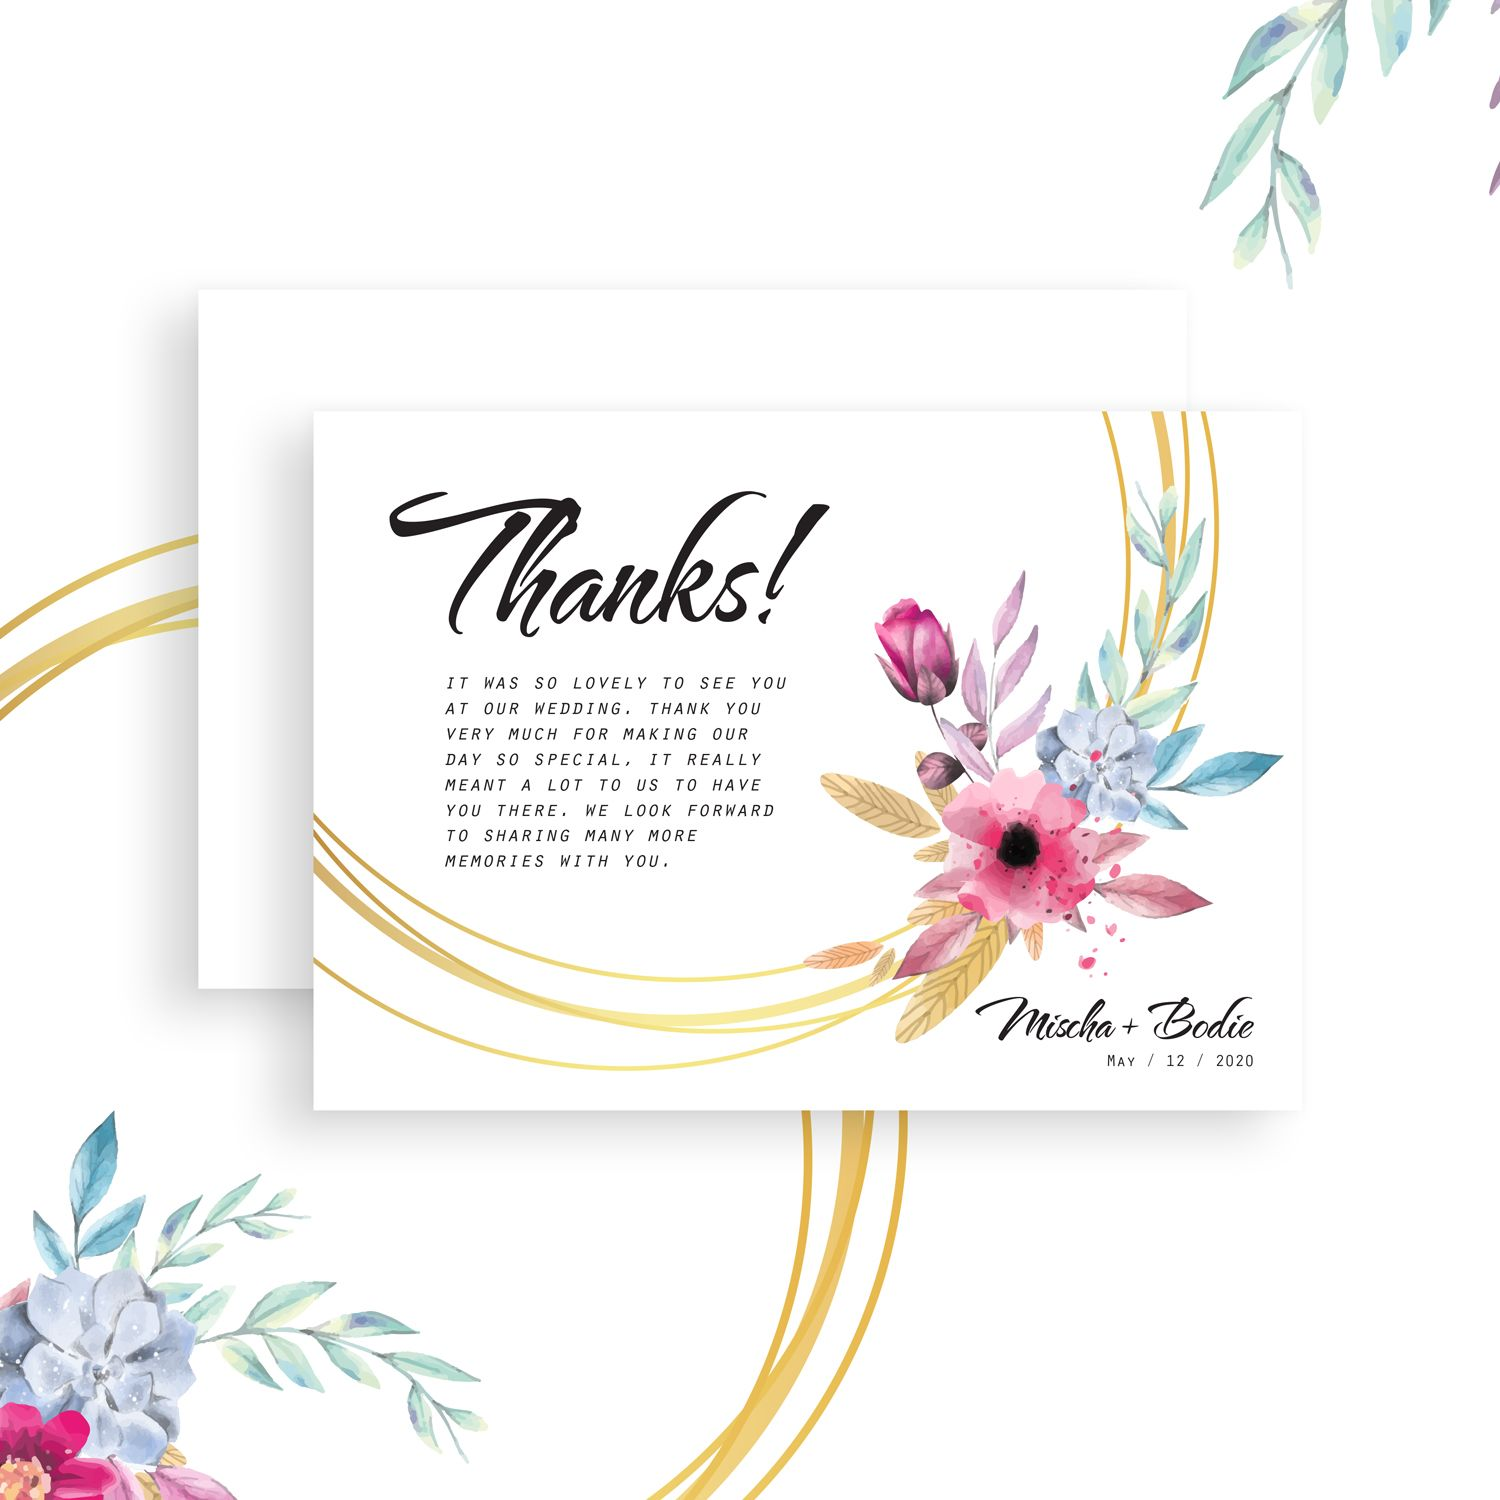 Floral boho chic thank you cards wedding thank you cards